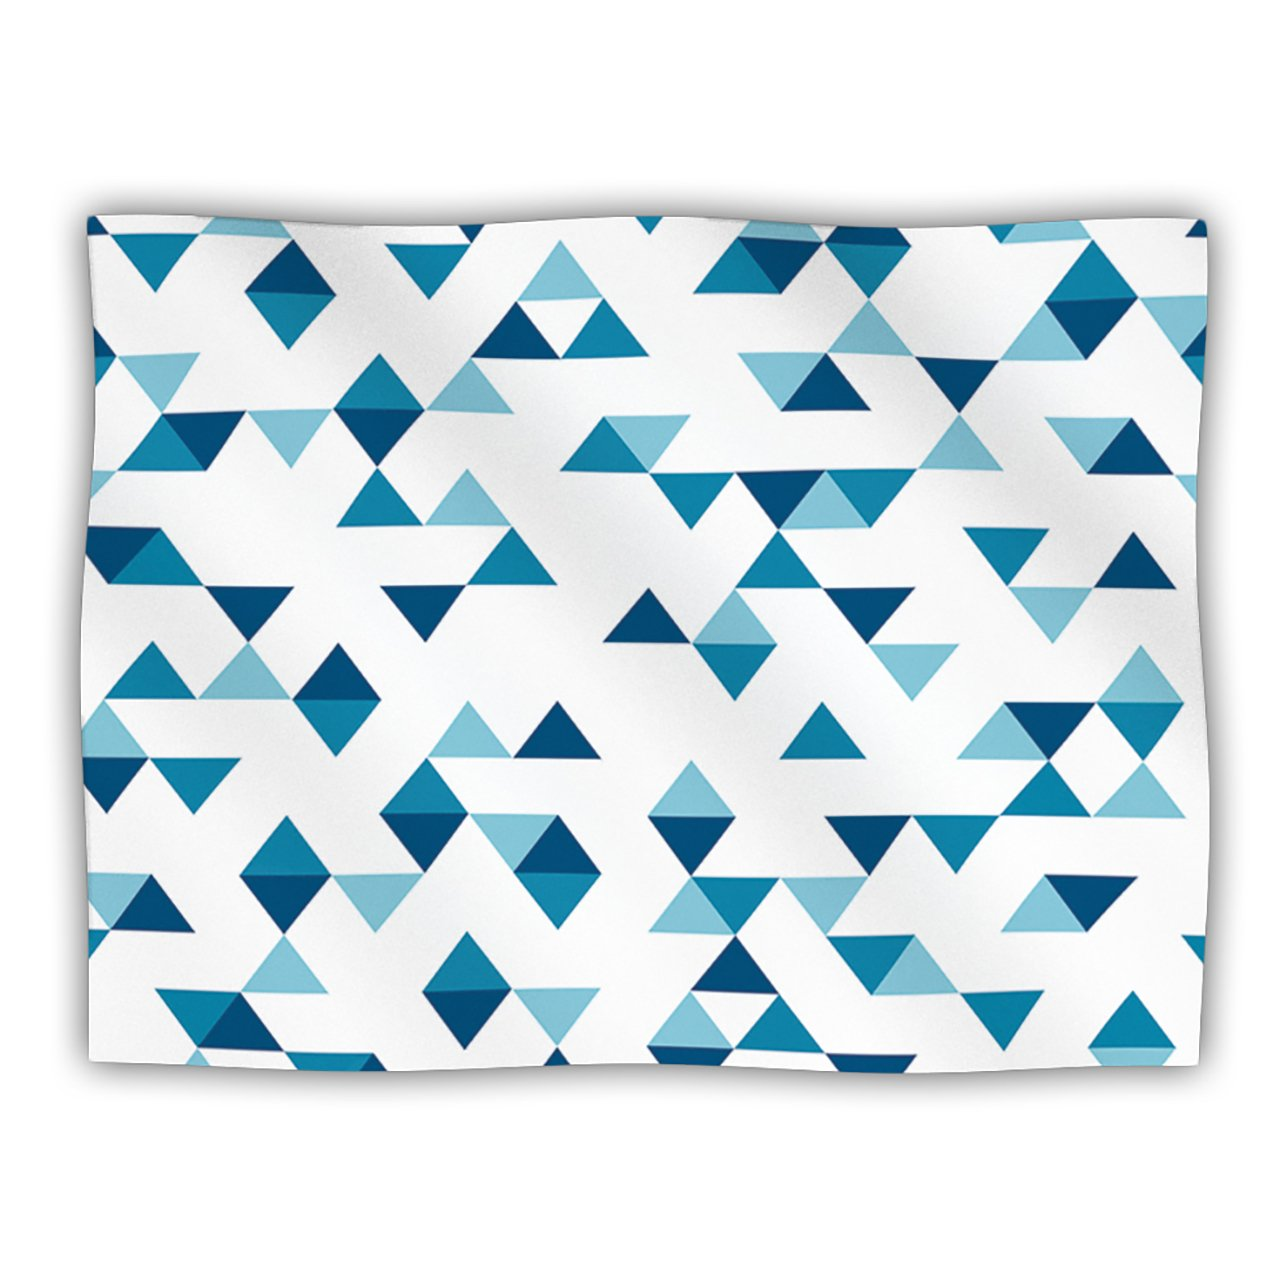 Kess InHouse Project M 'Triangles bluee' Navy White Dog Blanket, 40 by 30-Inch